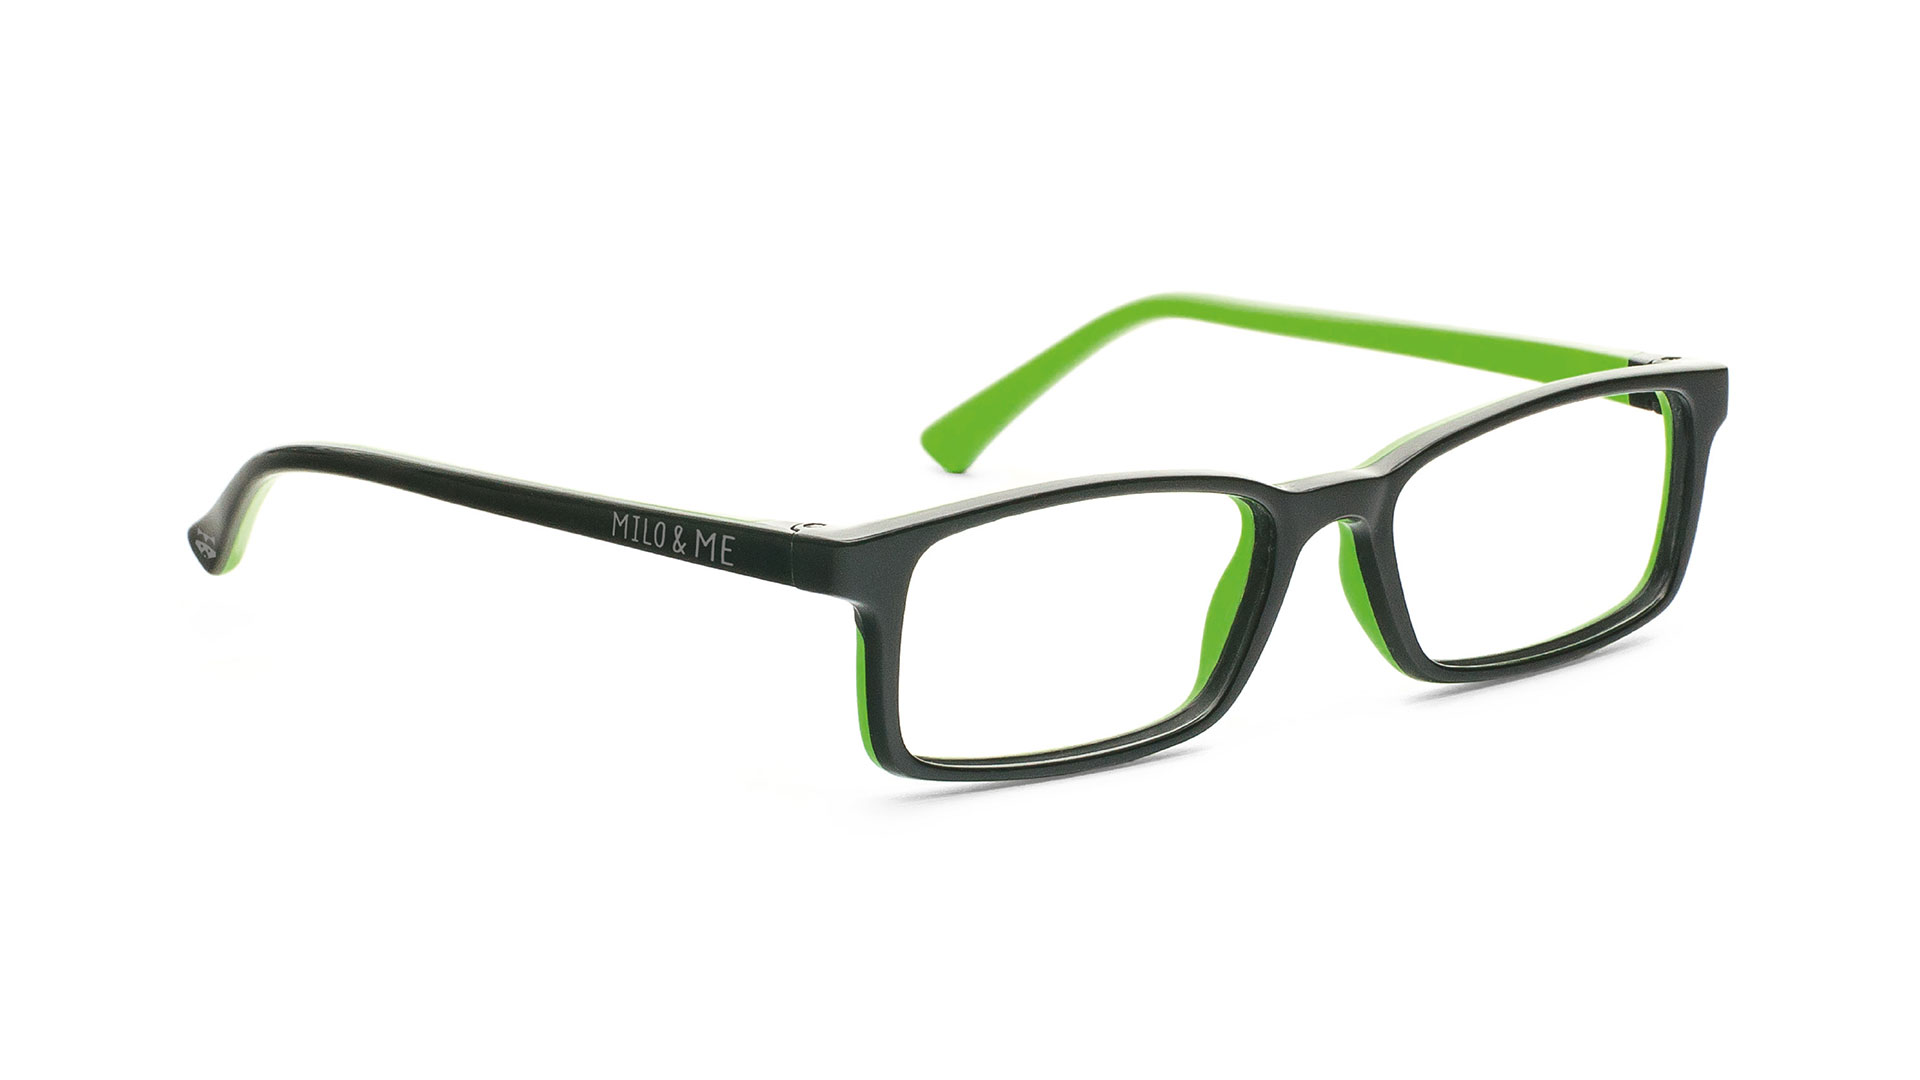 BlackApple Green H85020-12 - Milo & Me Eyewear - Optimum RX Lens Specialists